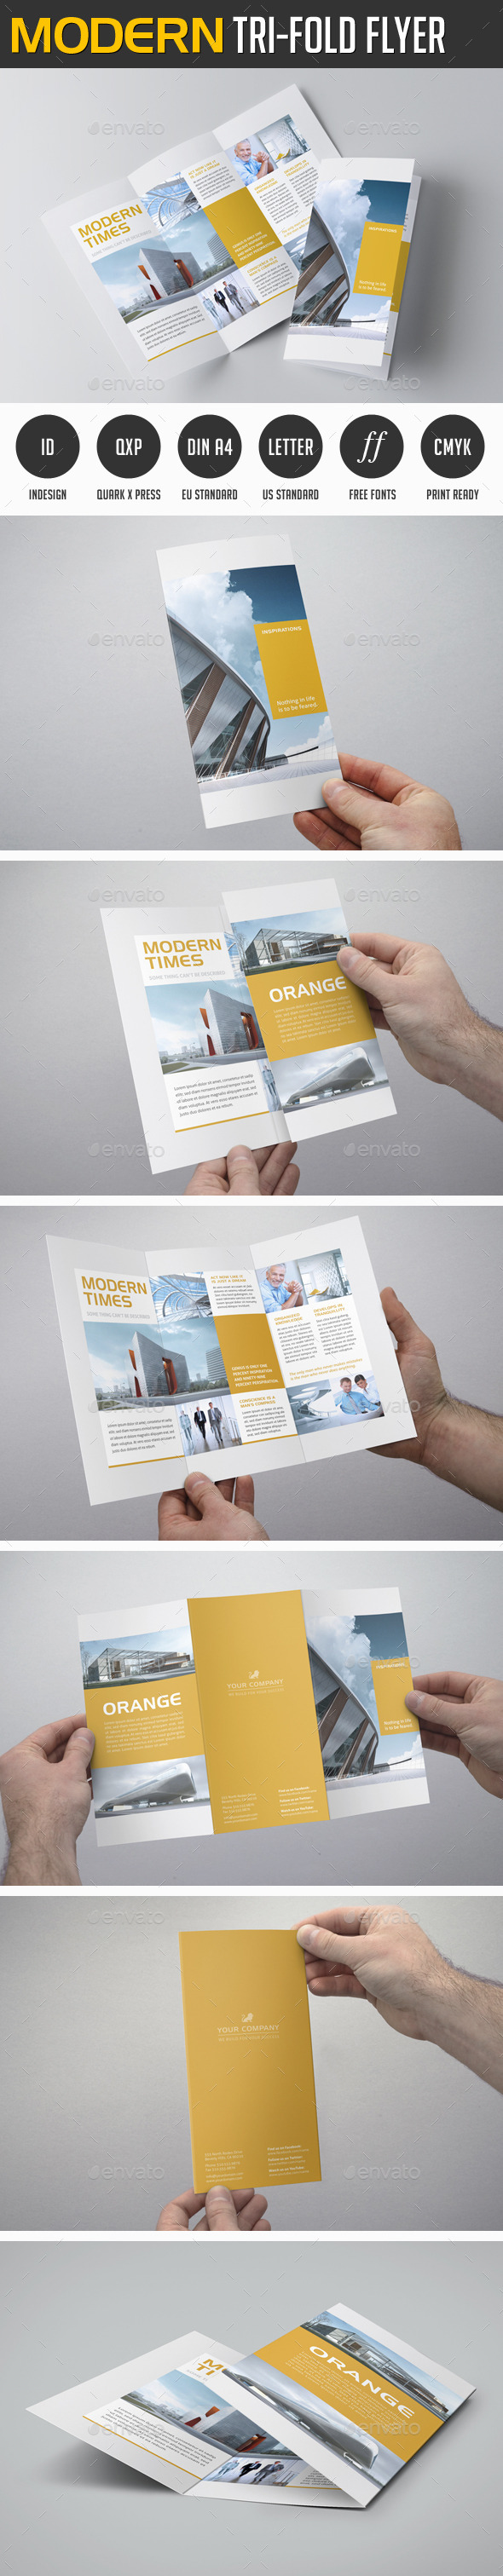 Modern Trifold Flyer - Corporate Brochures